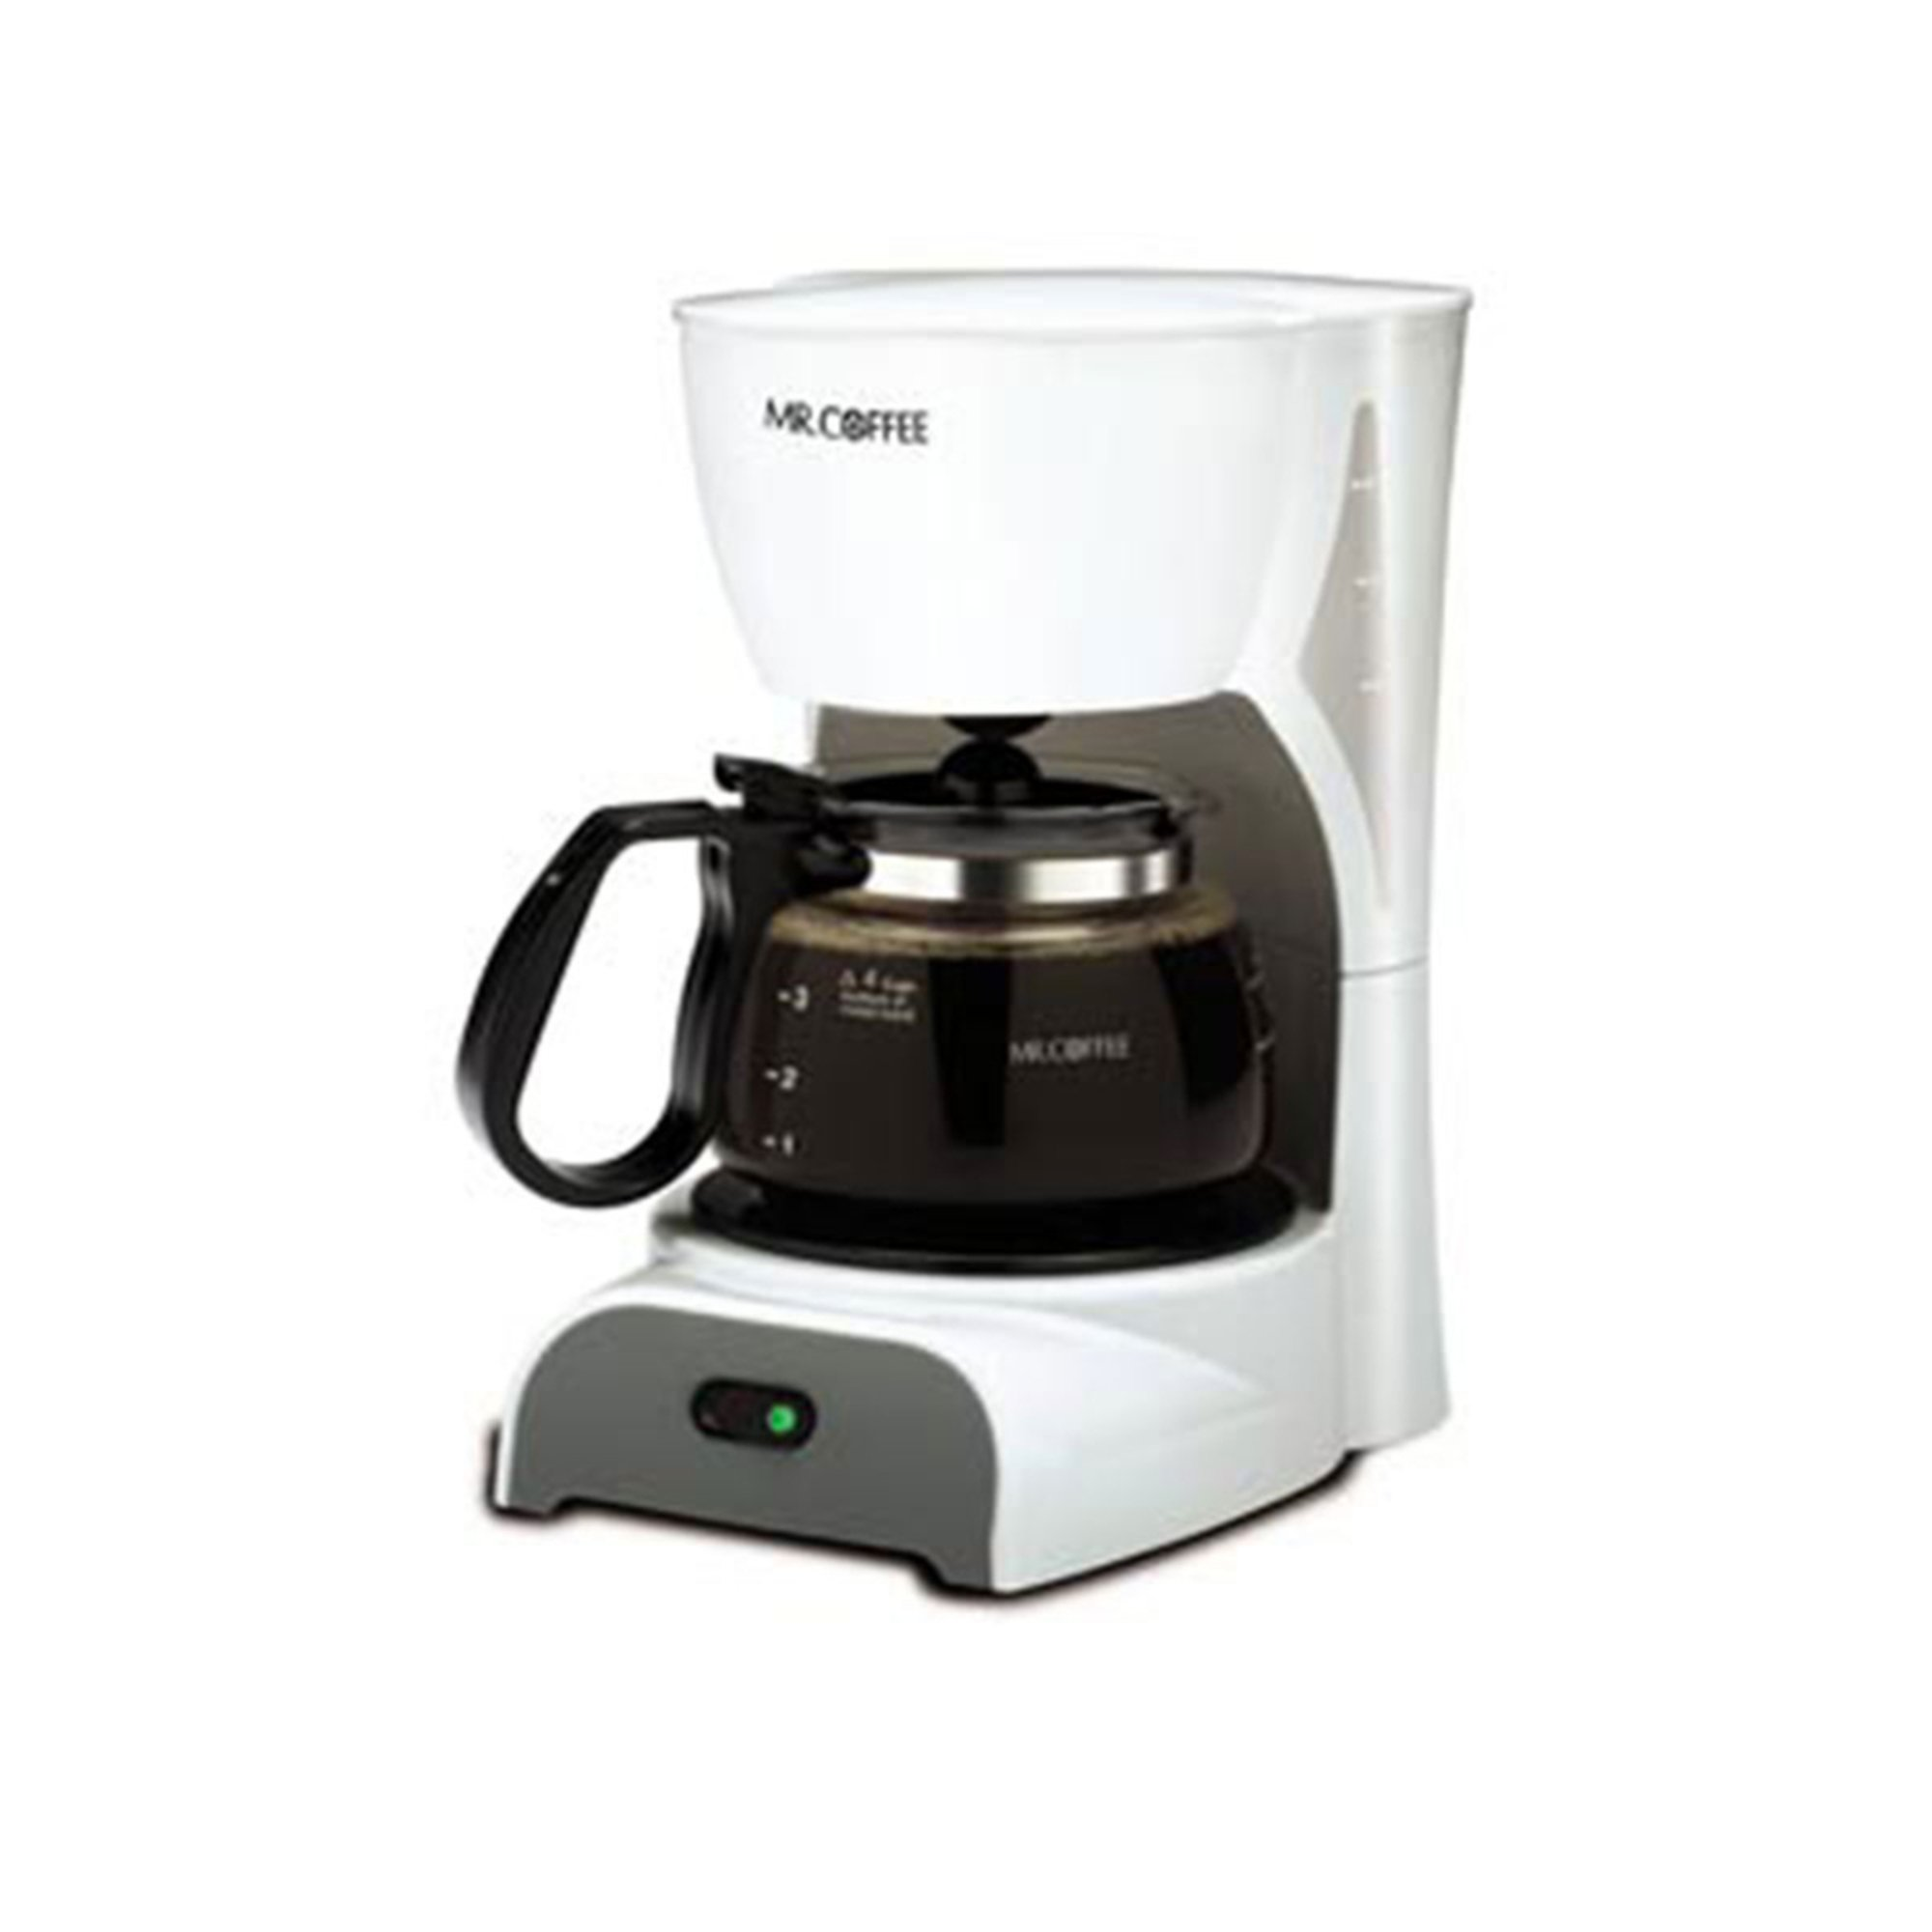 Coffee Maker Reviews 4 Cup : Mr. Coffee 4-cup Coffeemaker, White (dr4-np) Coffee Makers For The Home - Shop Your Navy ...